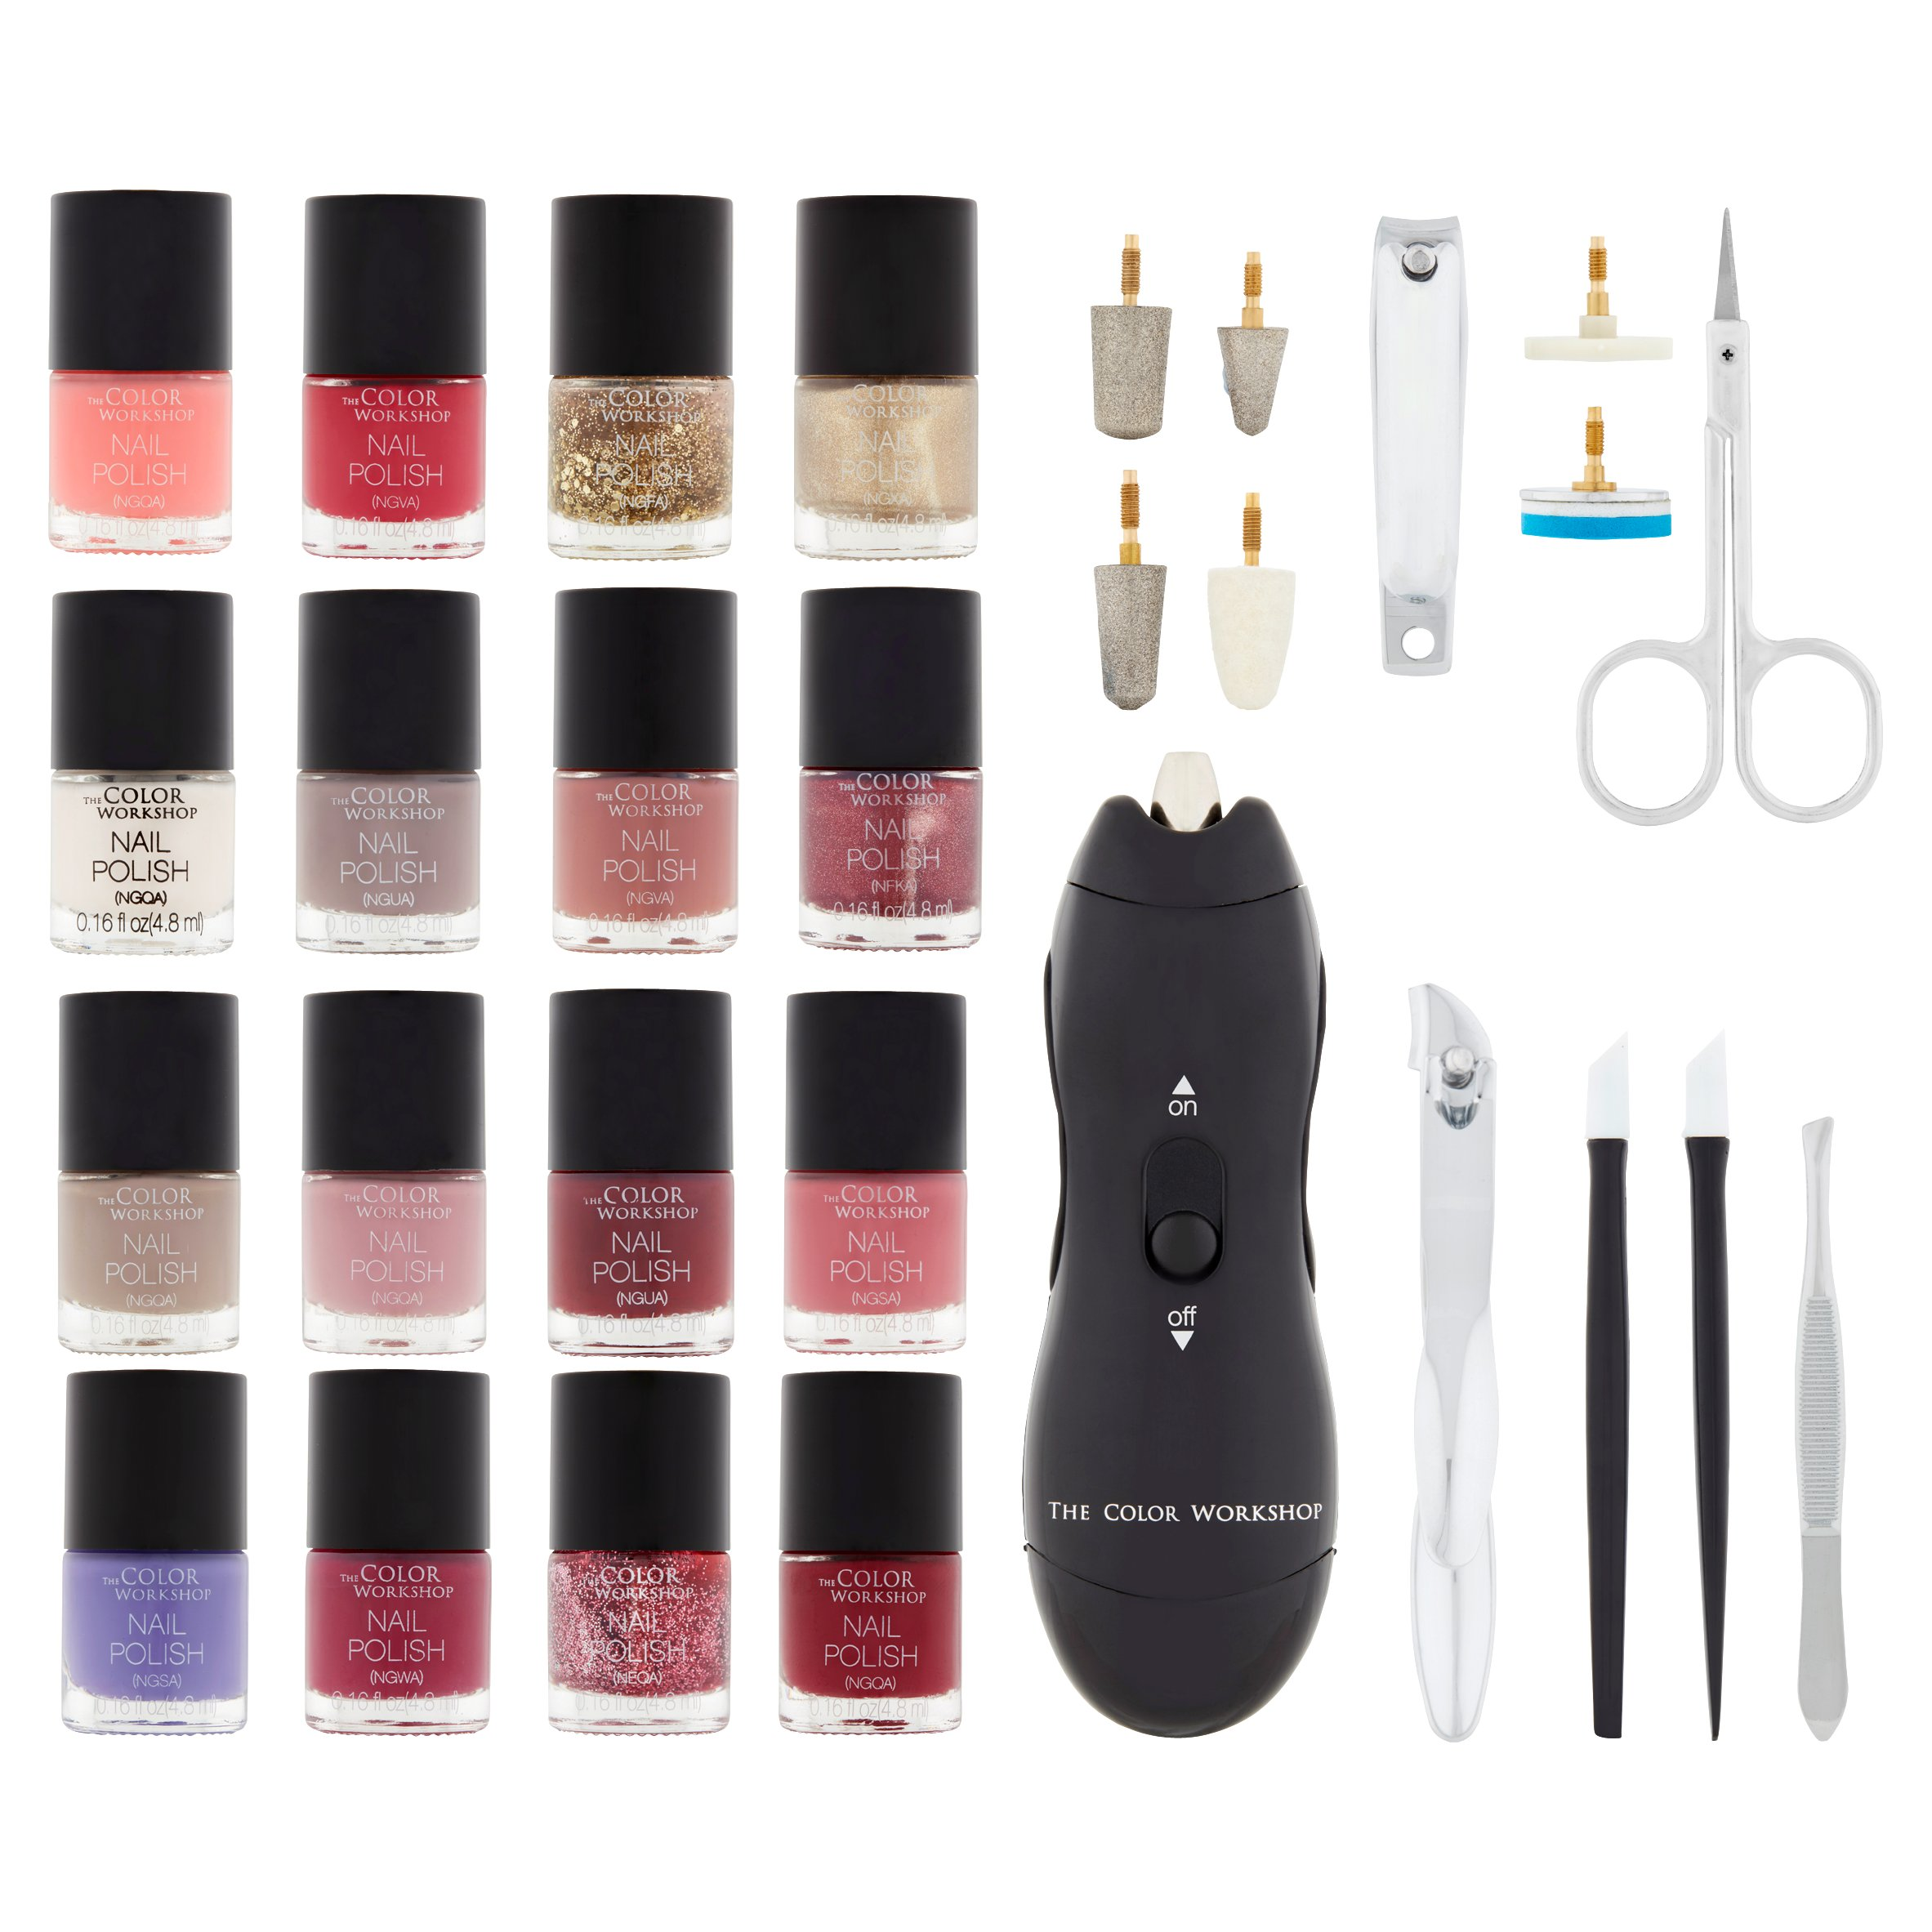 The Color Workshop Incredible Nails Nail Polish Salon Gift Set, 30 piece